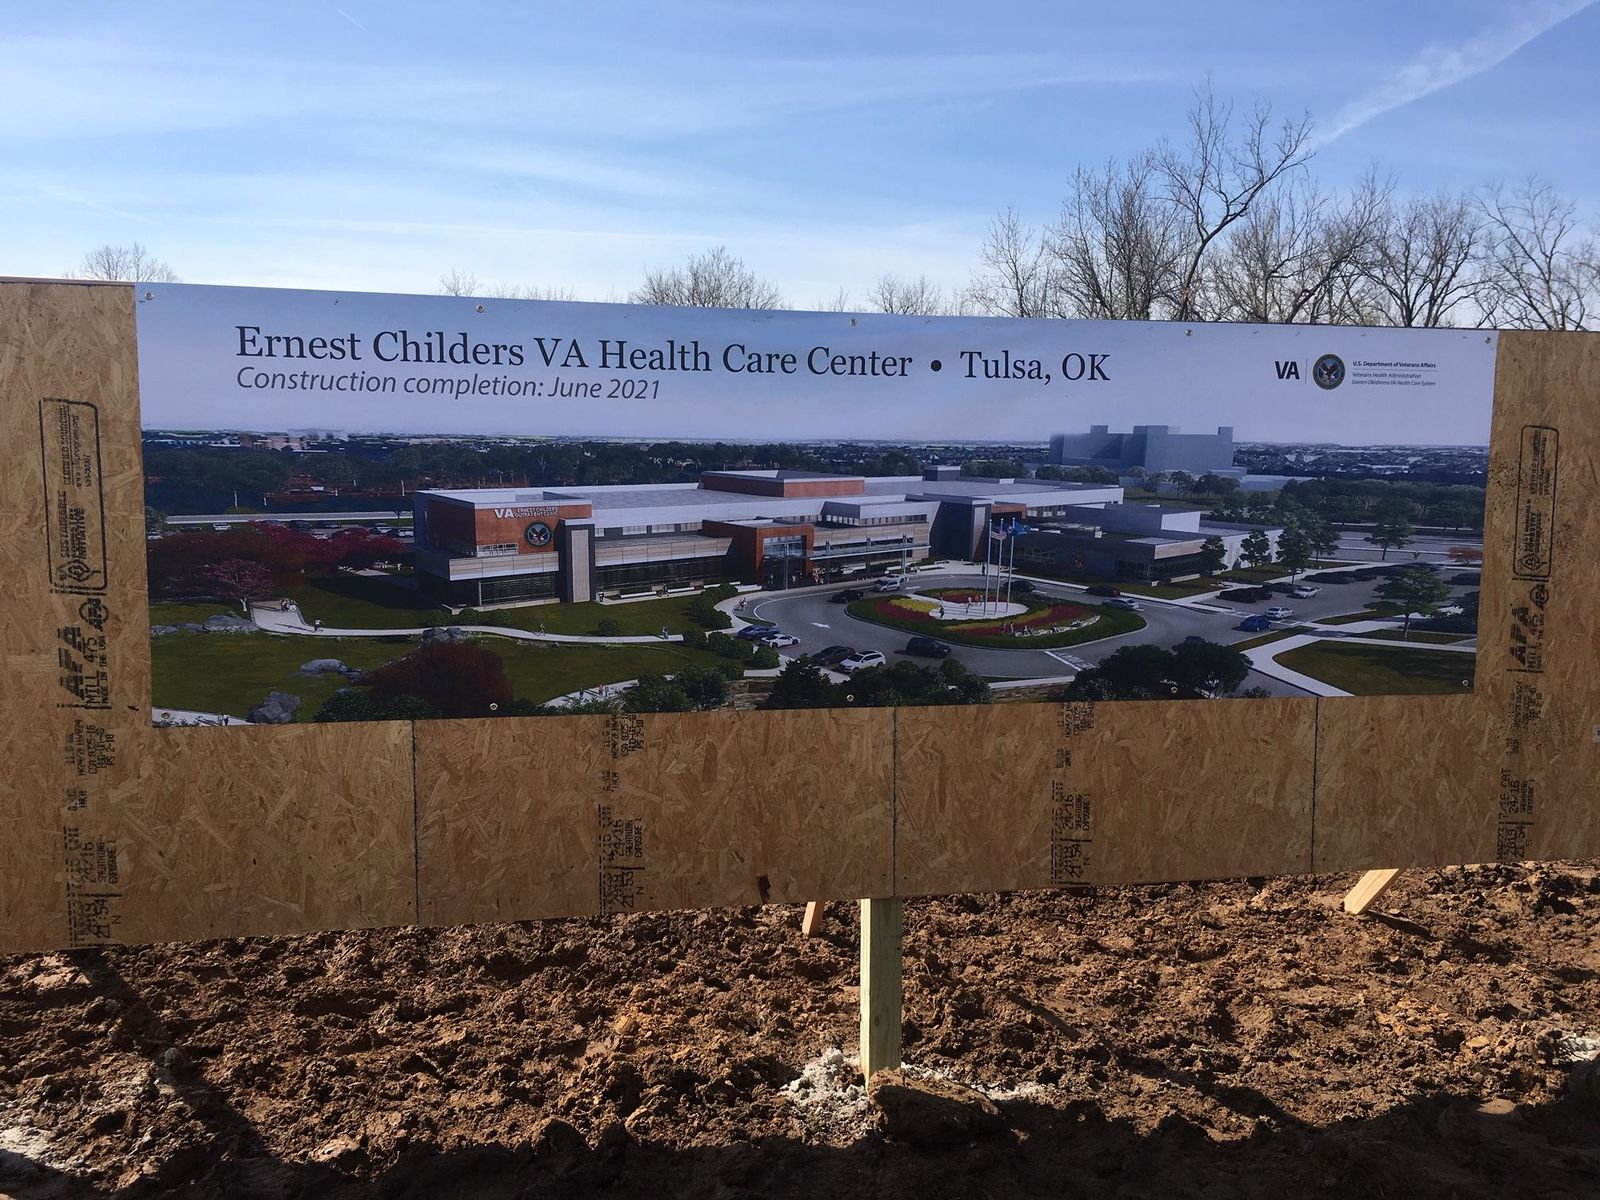 Groundbreaking for Ernest Childers VA Health Center in Tulsa; 5 Apr 2019 (KTUL)